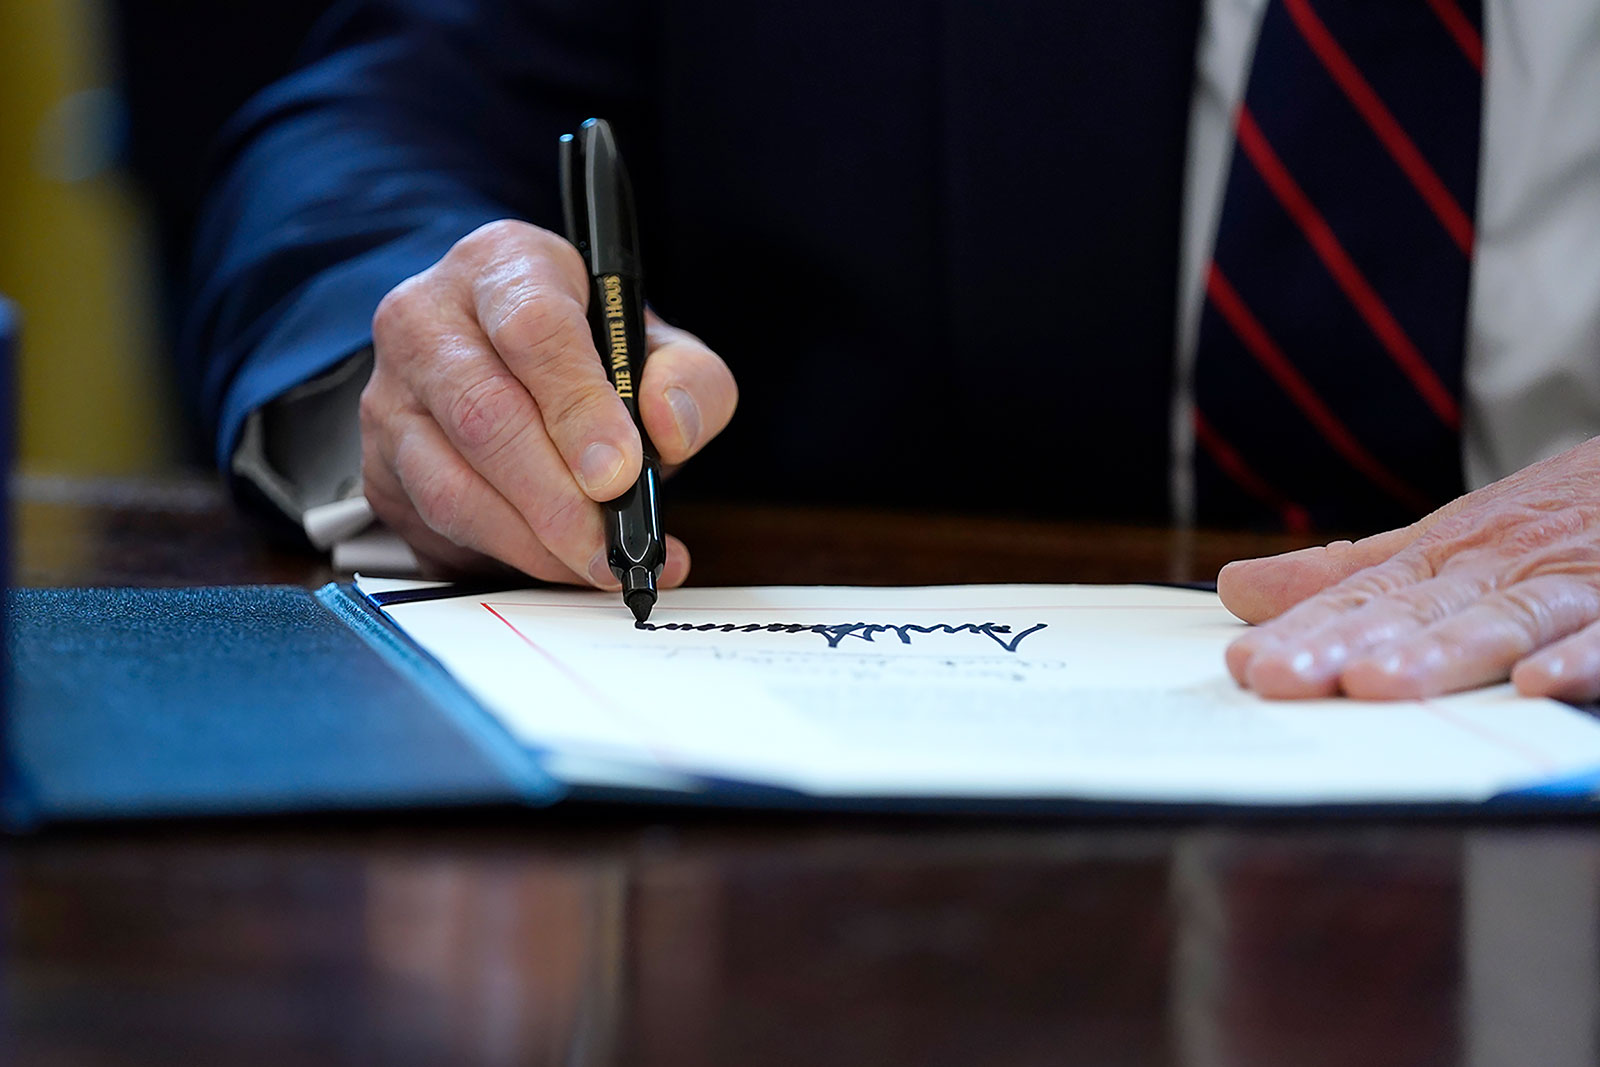 President Trump signs the coronavirus stimulus relief package in the Oval Office at the White House on Friday, March 27.